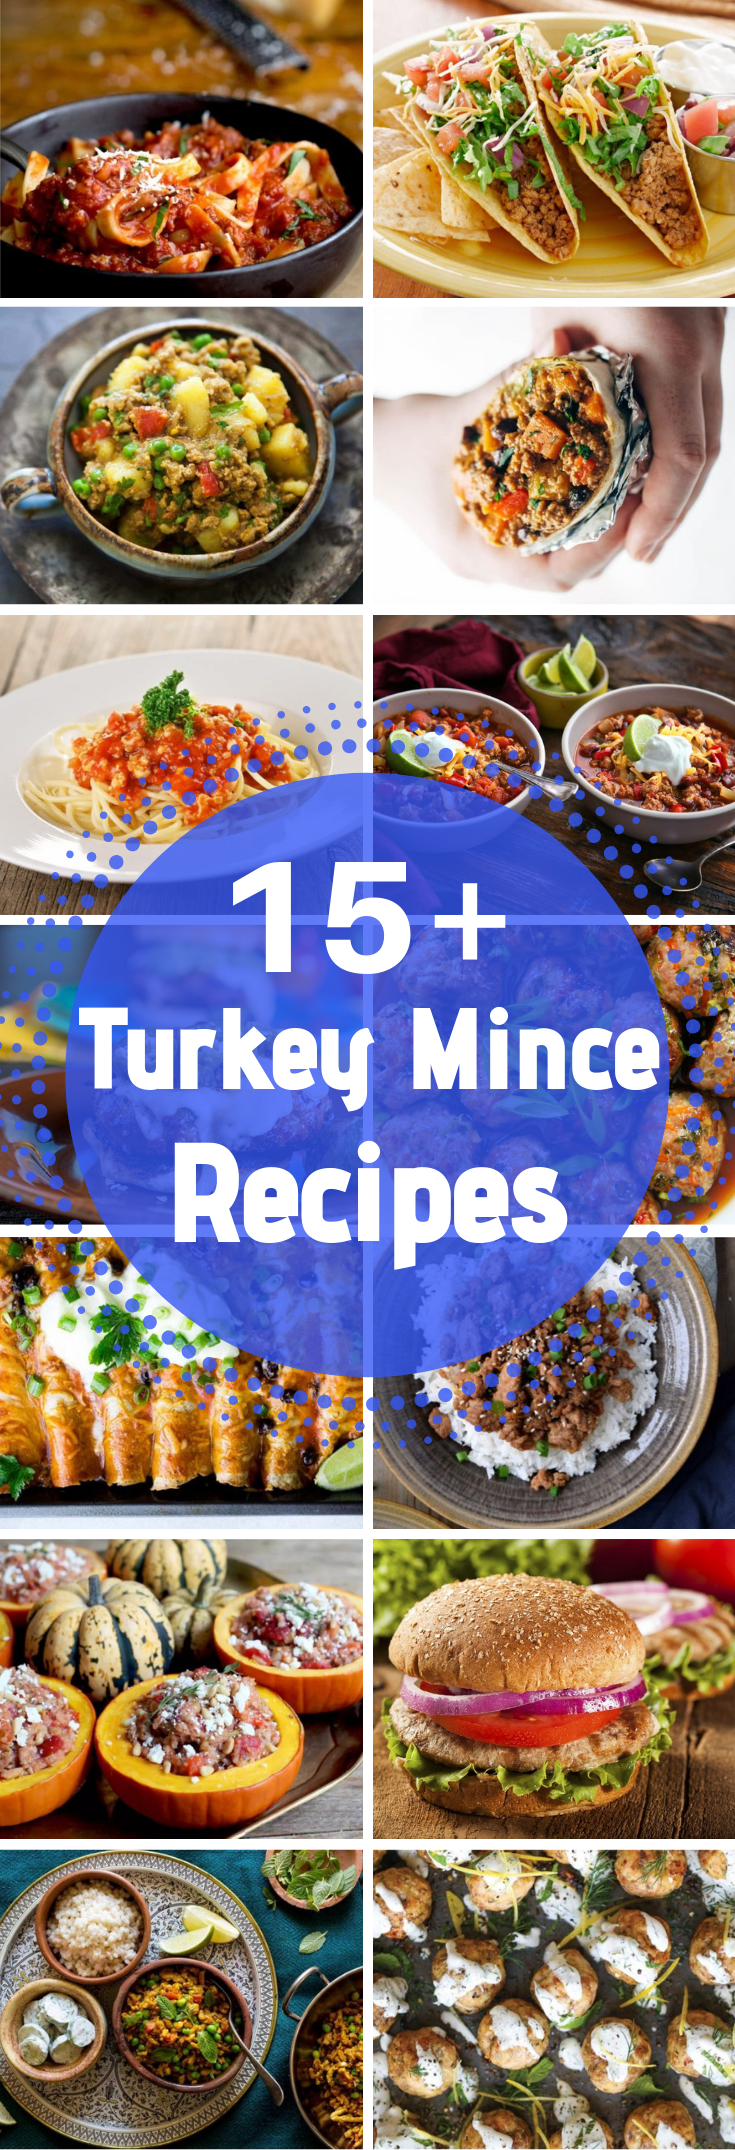 22 Delicious Turkey Mince Recipes You've Never Tried ...